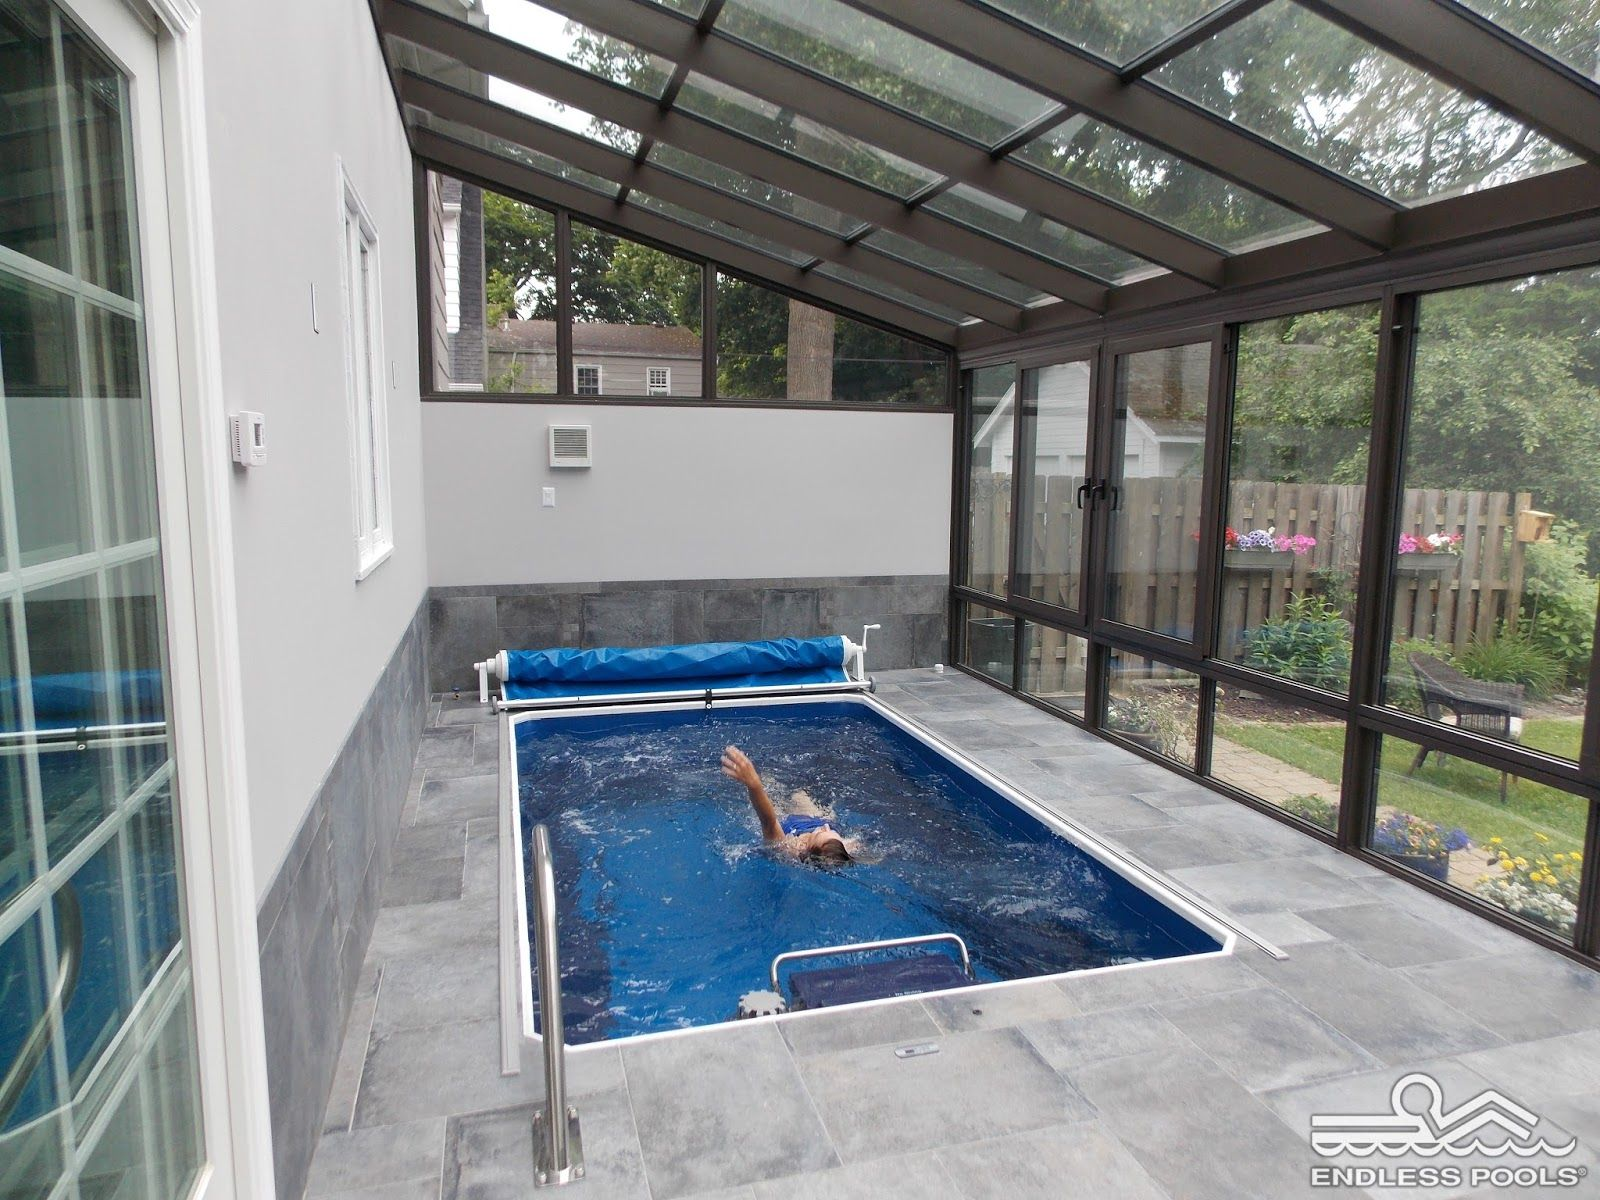 Pool Enclosures Make An Affordable Option For Year Round Swimming In A Sunroom Environment Dream Pool Indoor Indoor Swimming Pool Design Indoor Swimming Pools